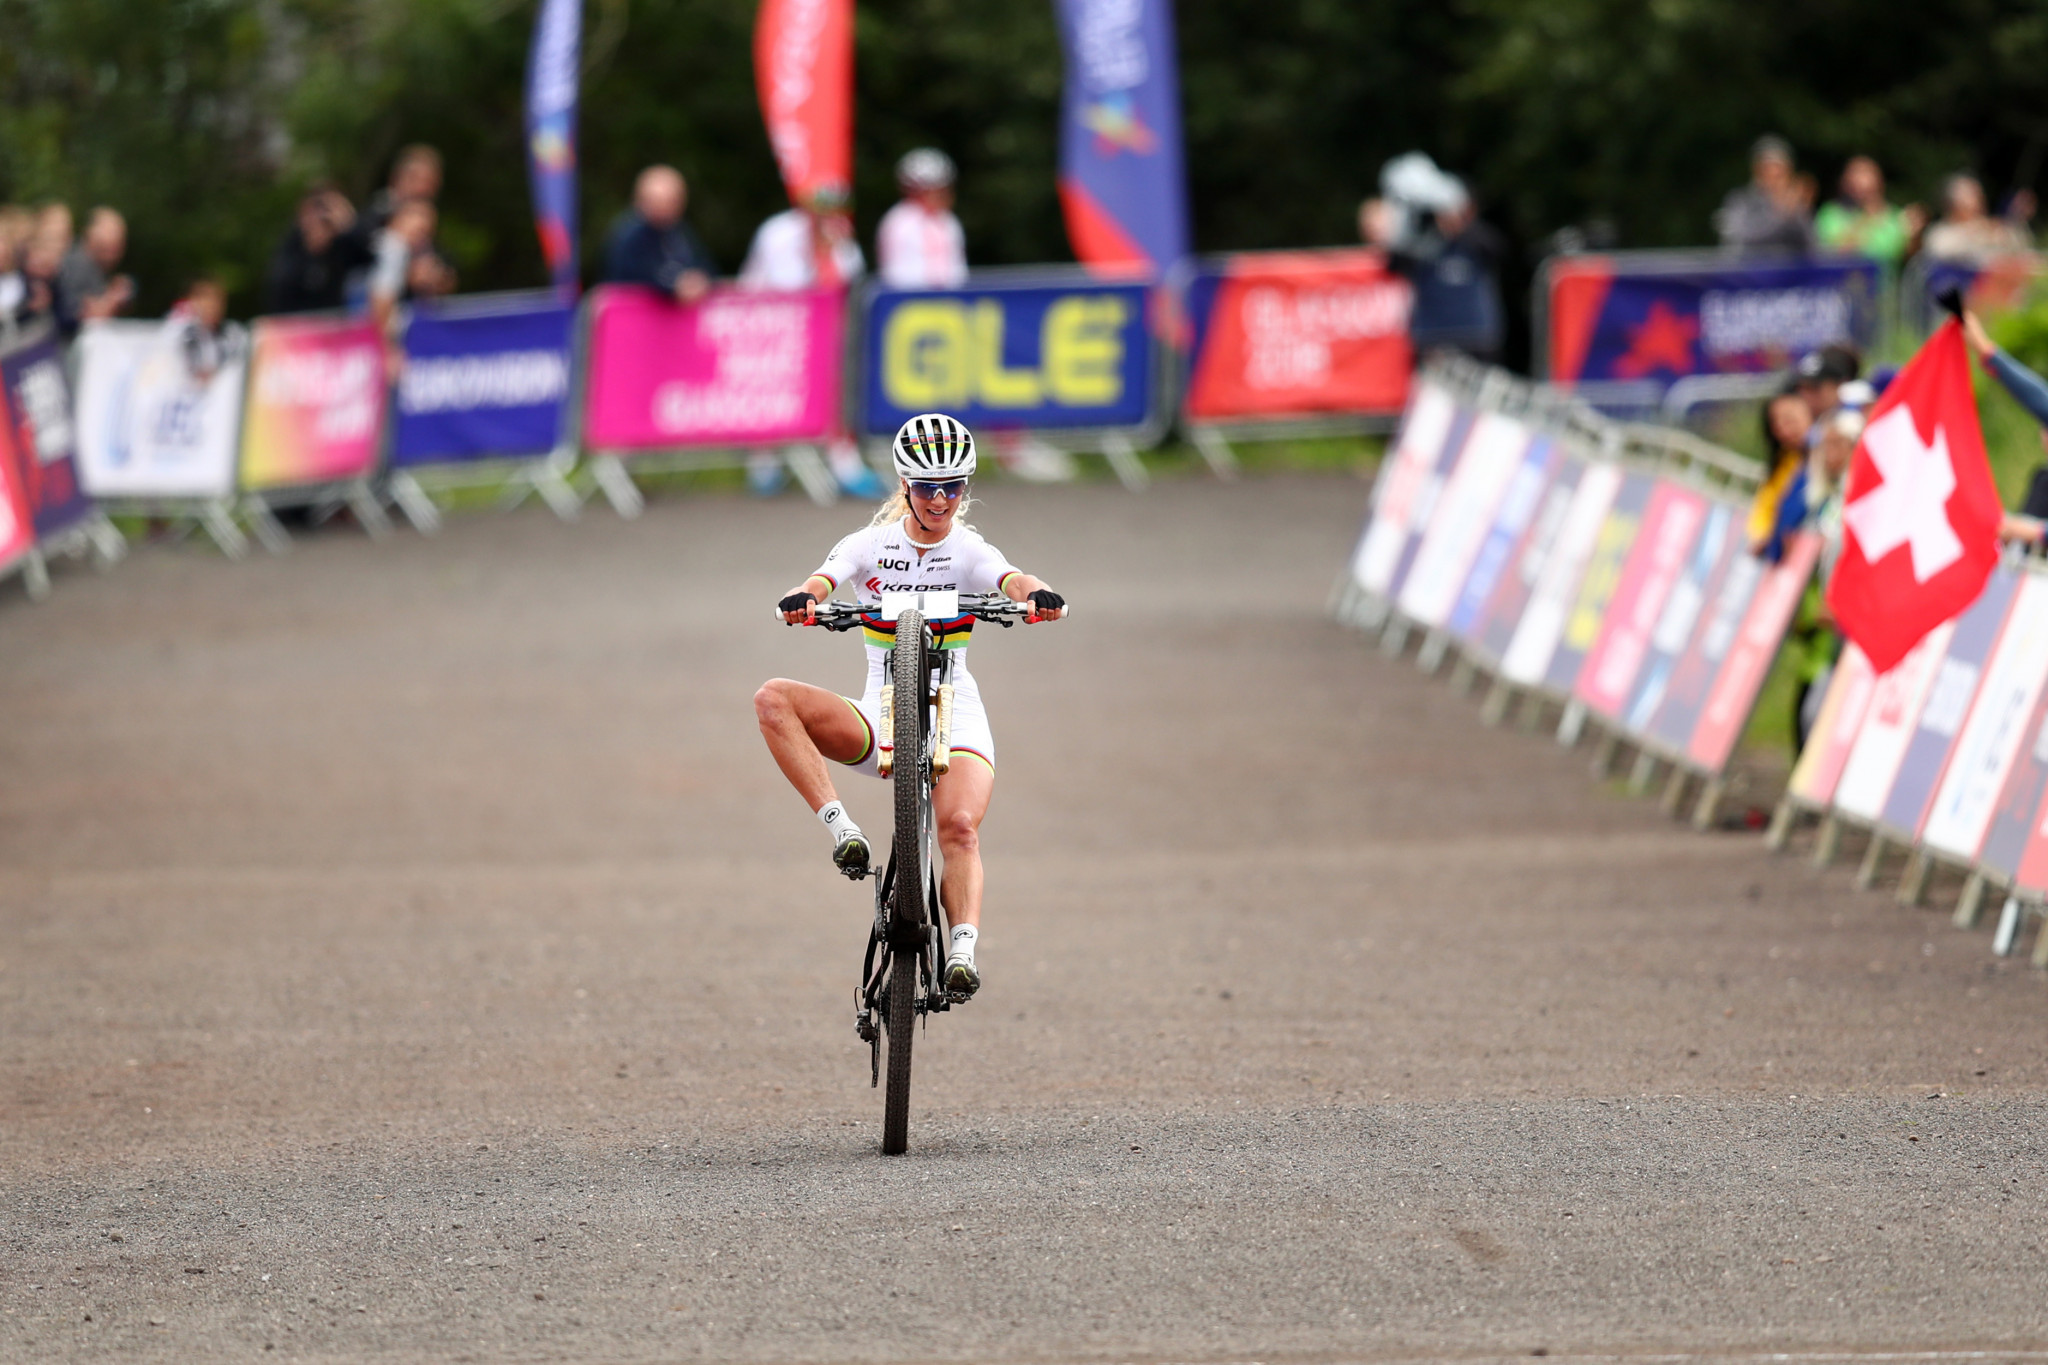 Jolanda Neff celebrated a comfortable victory in the women's mountain bike event ©Getty Images